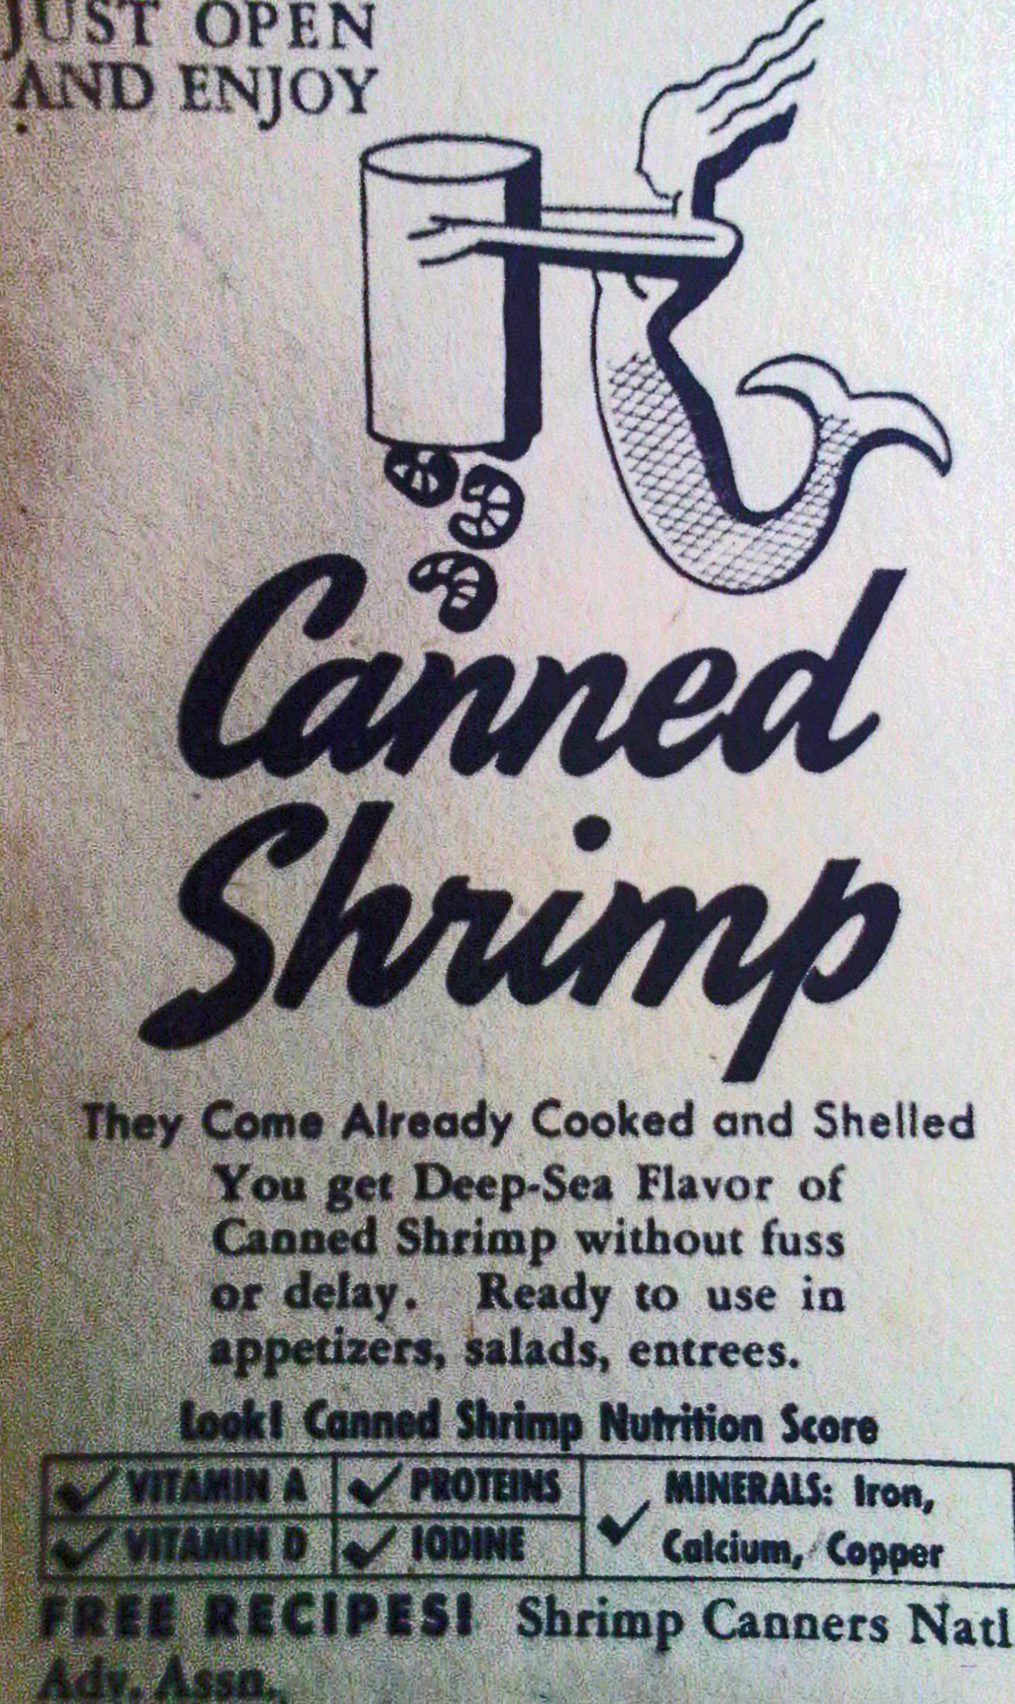 Shrimp Canners National Advertising Association 1942